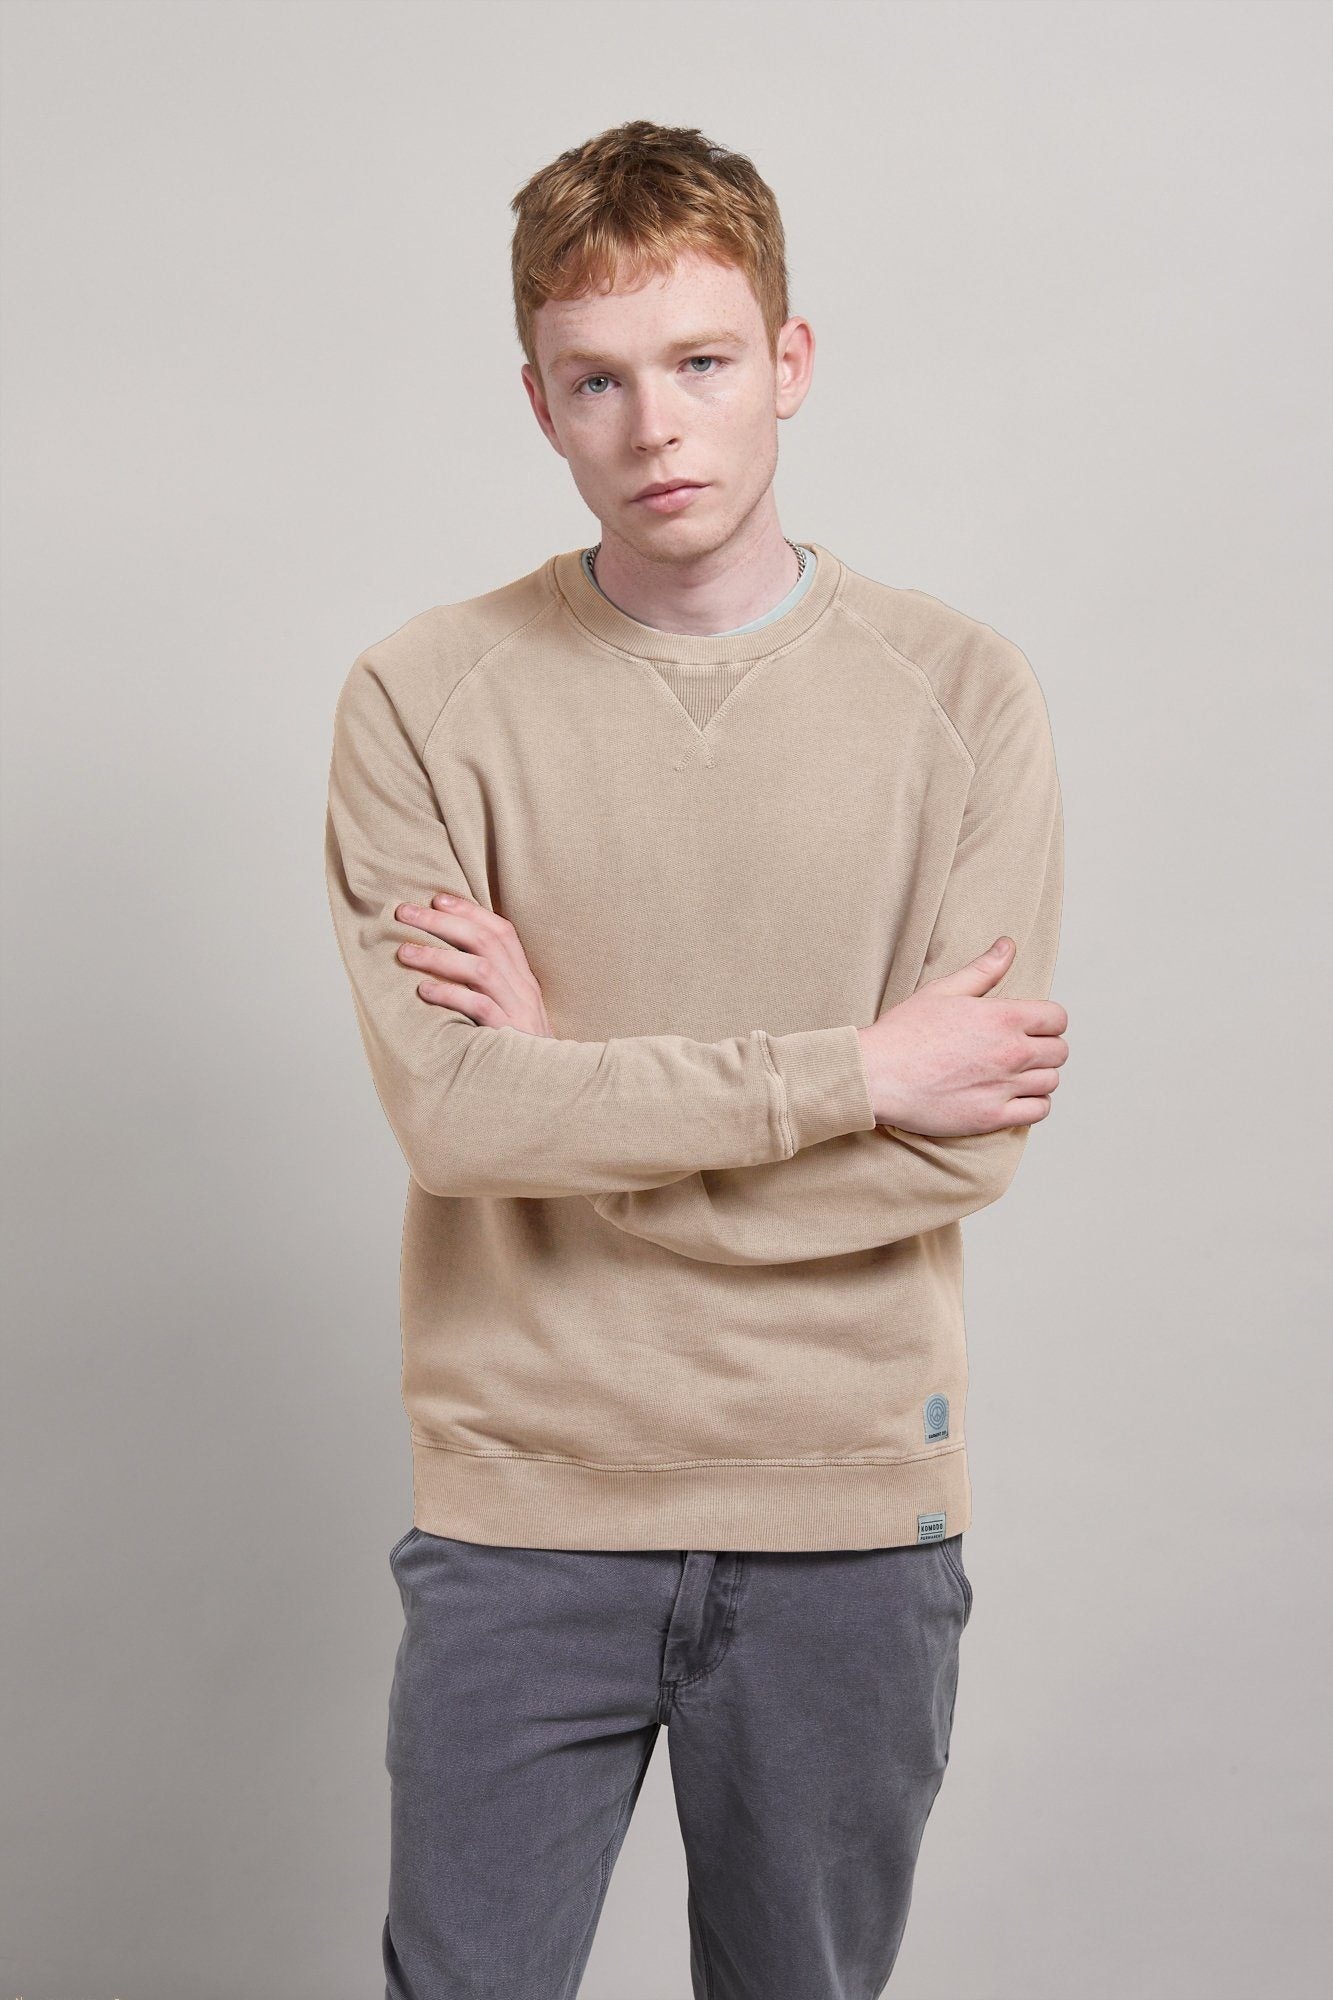 Jumper - ANTON Organic Cotton Raglan Sweat Oatmeal